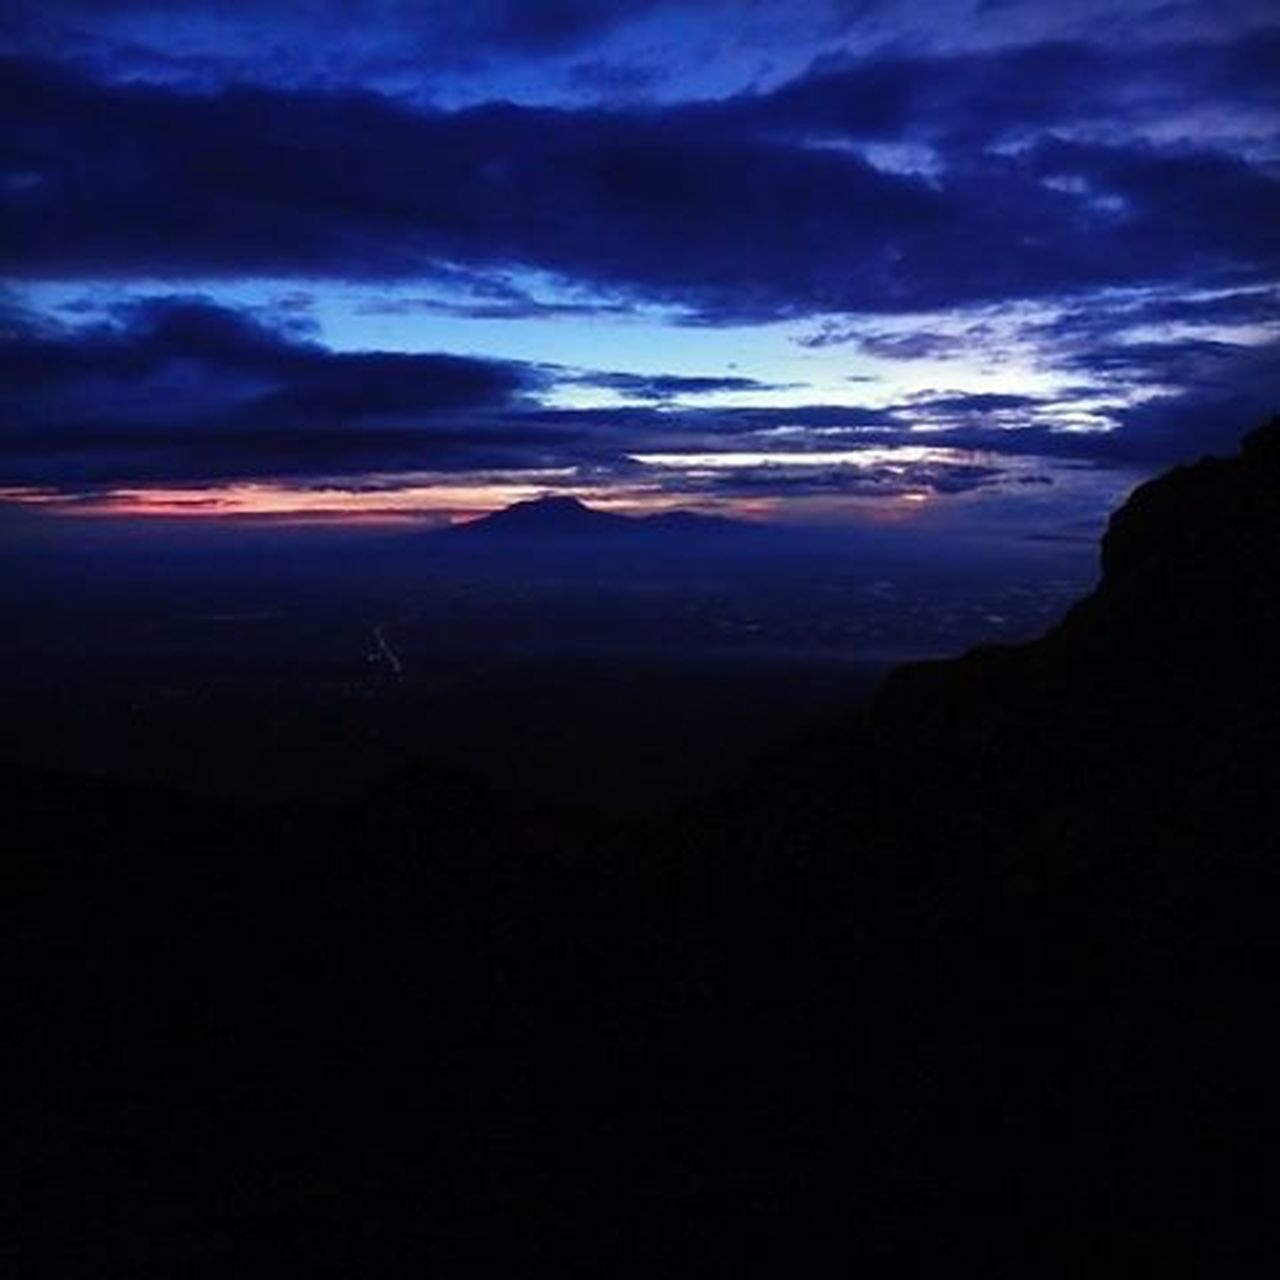 Sunrise seen from the top of Merapi Mount in Indonesia ThousandMilesJourney.com ASIA INDONESIA Explorejogja Exploreklaten Merapi Sunrise_sunsets_aroundworld Sunrises Backpacking Travelaroundtheworld Traveling Hiking Volcano